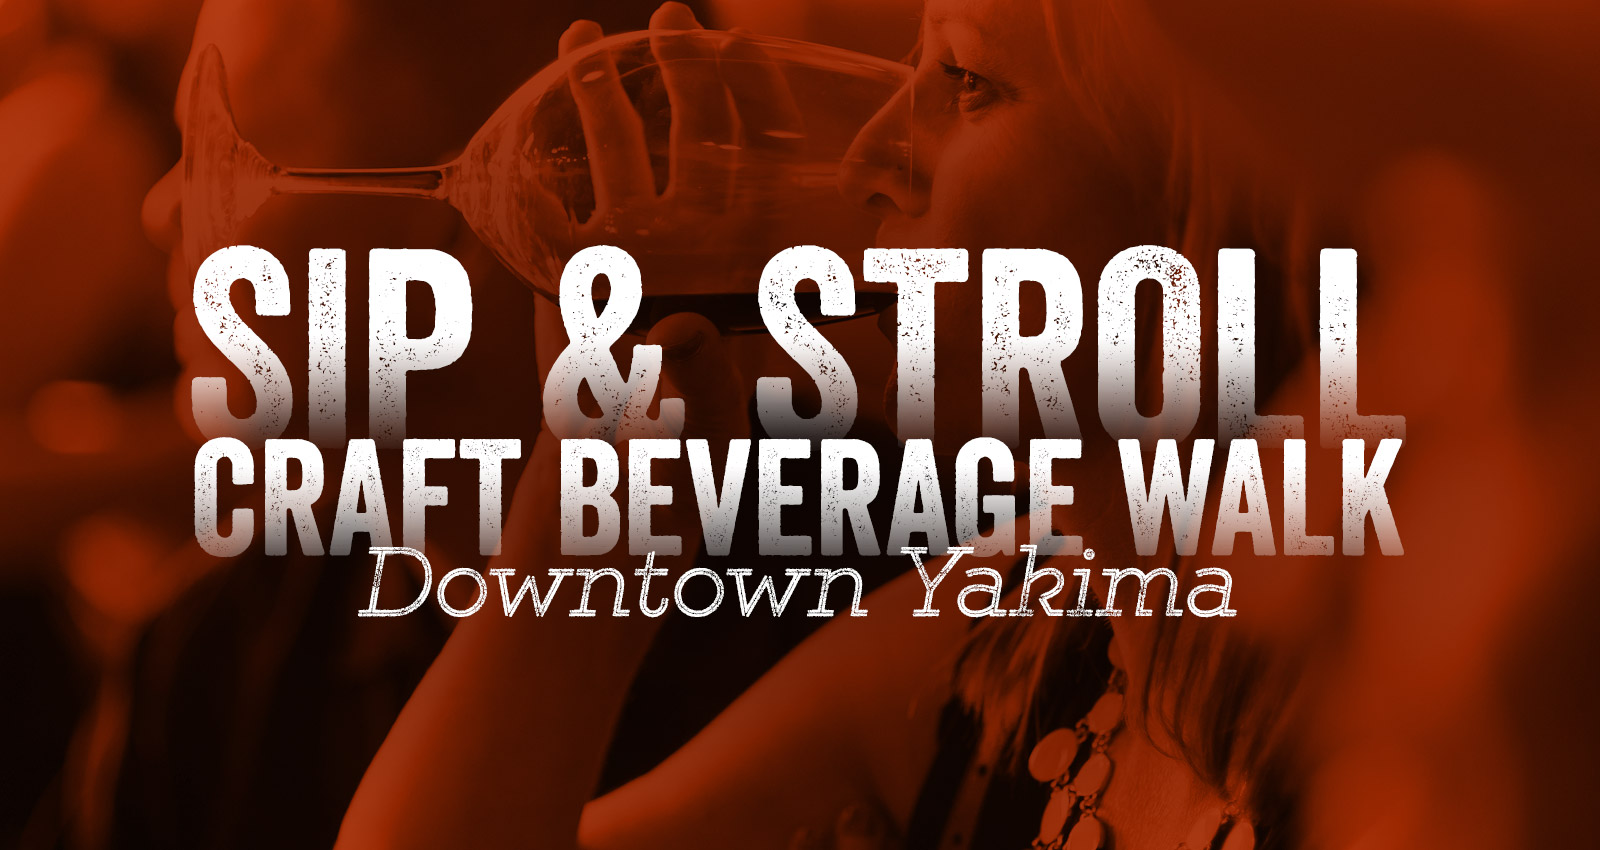 Craft Beverage Walk - Downtown Yakima Wine, Beer and Food Event